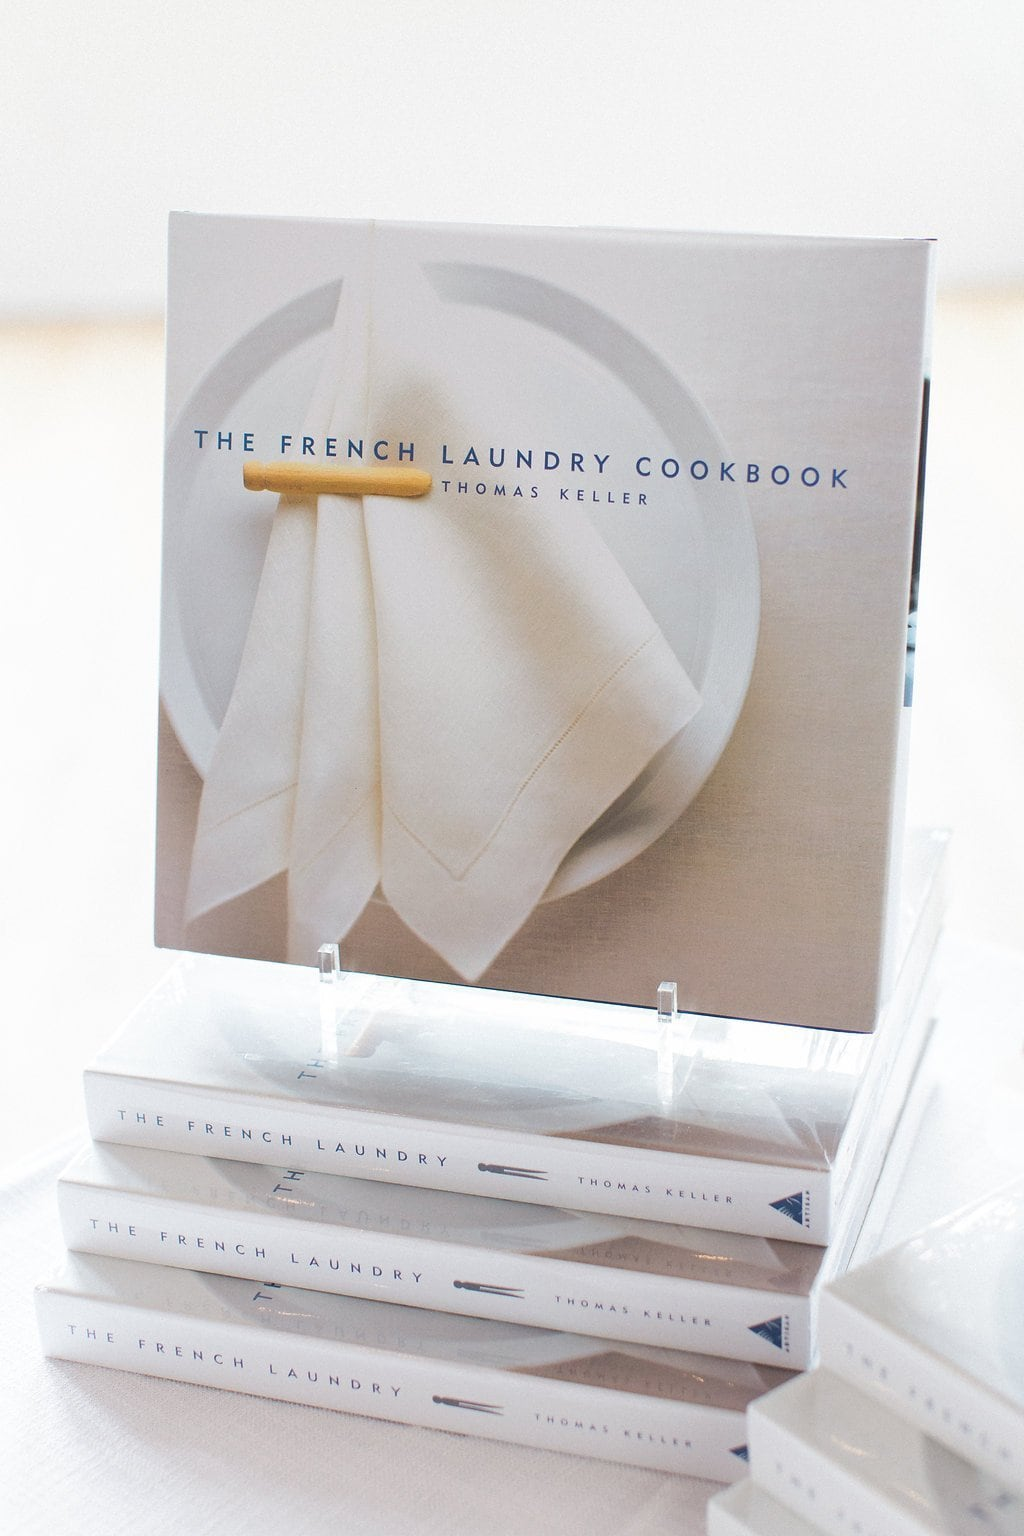 The French Laundry cookbook on a stand